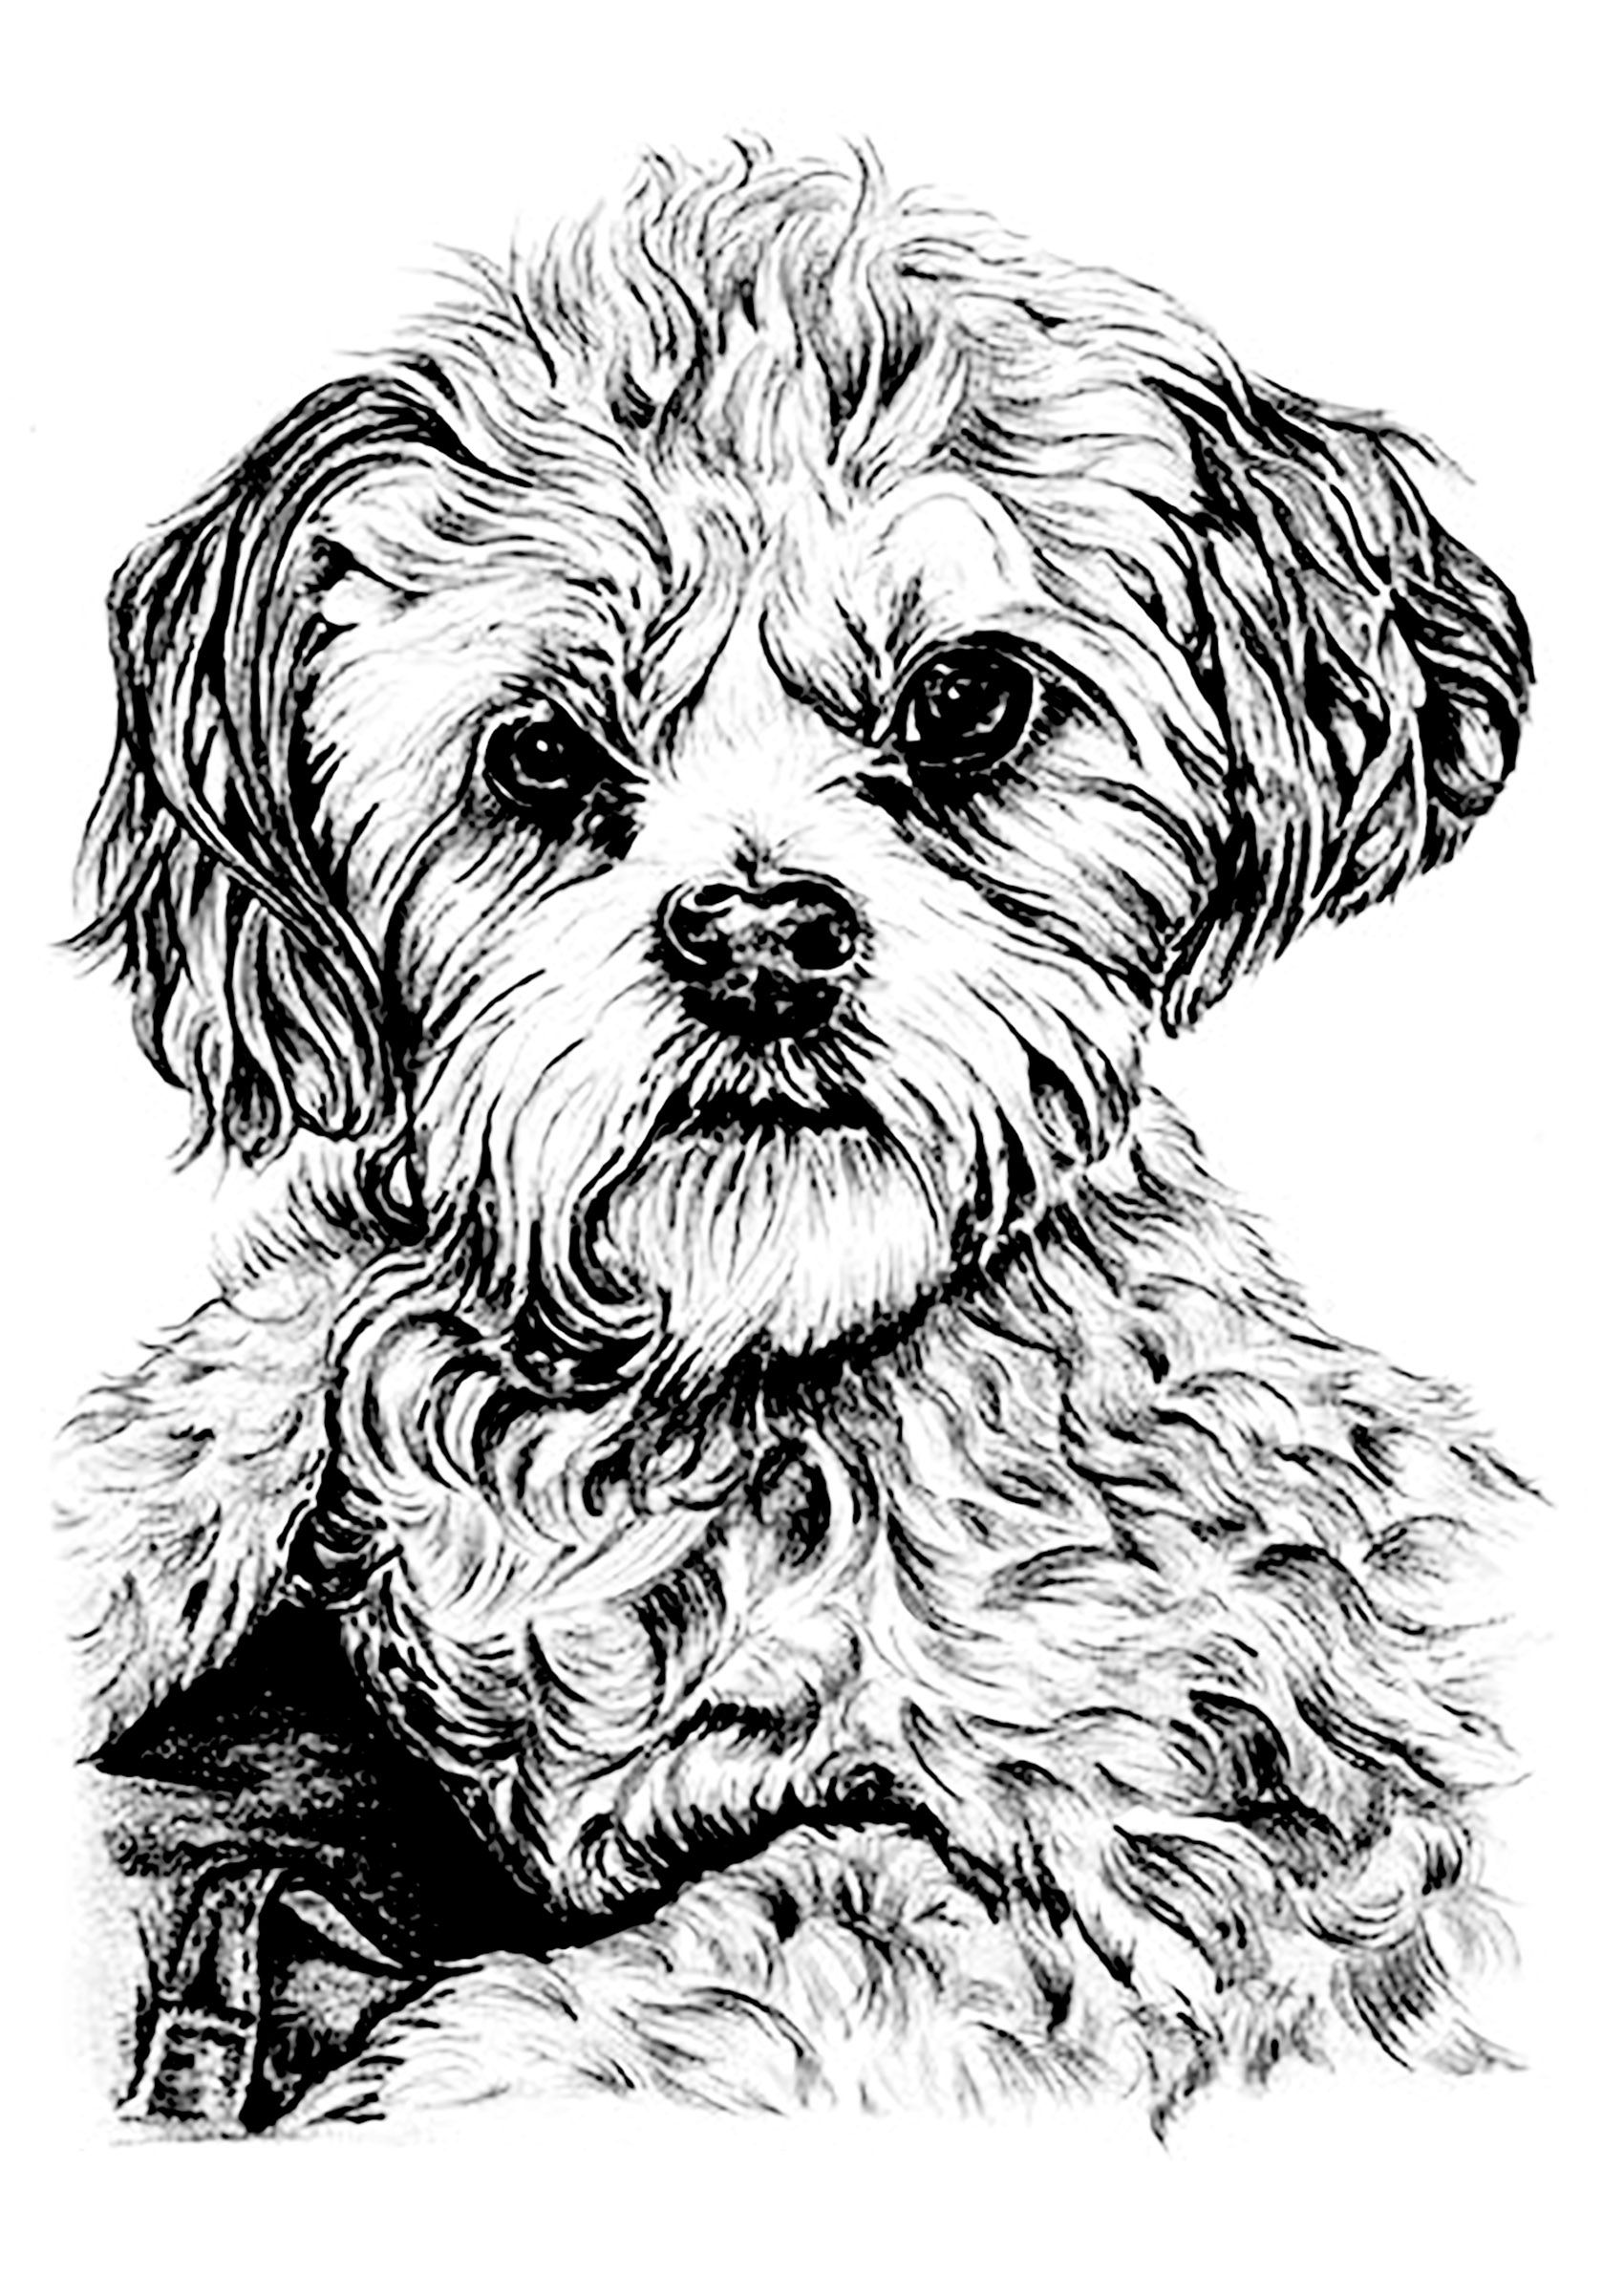 Here Are Complex Coloring Pages For Adults Of Animals Different Levels Of Details And Styles Are Available From The Dog Coloring Page Dog Sketch Dog Drawing